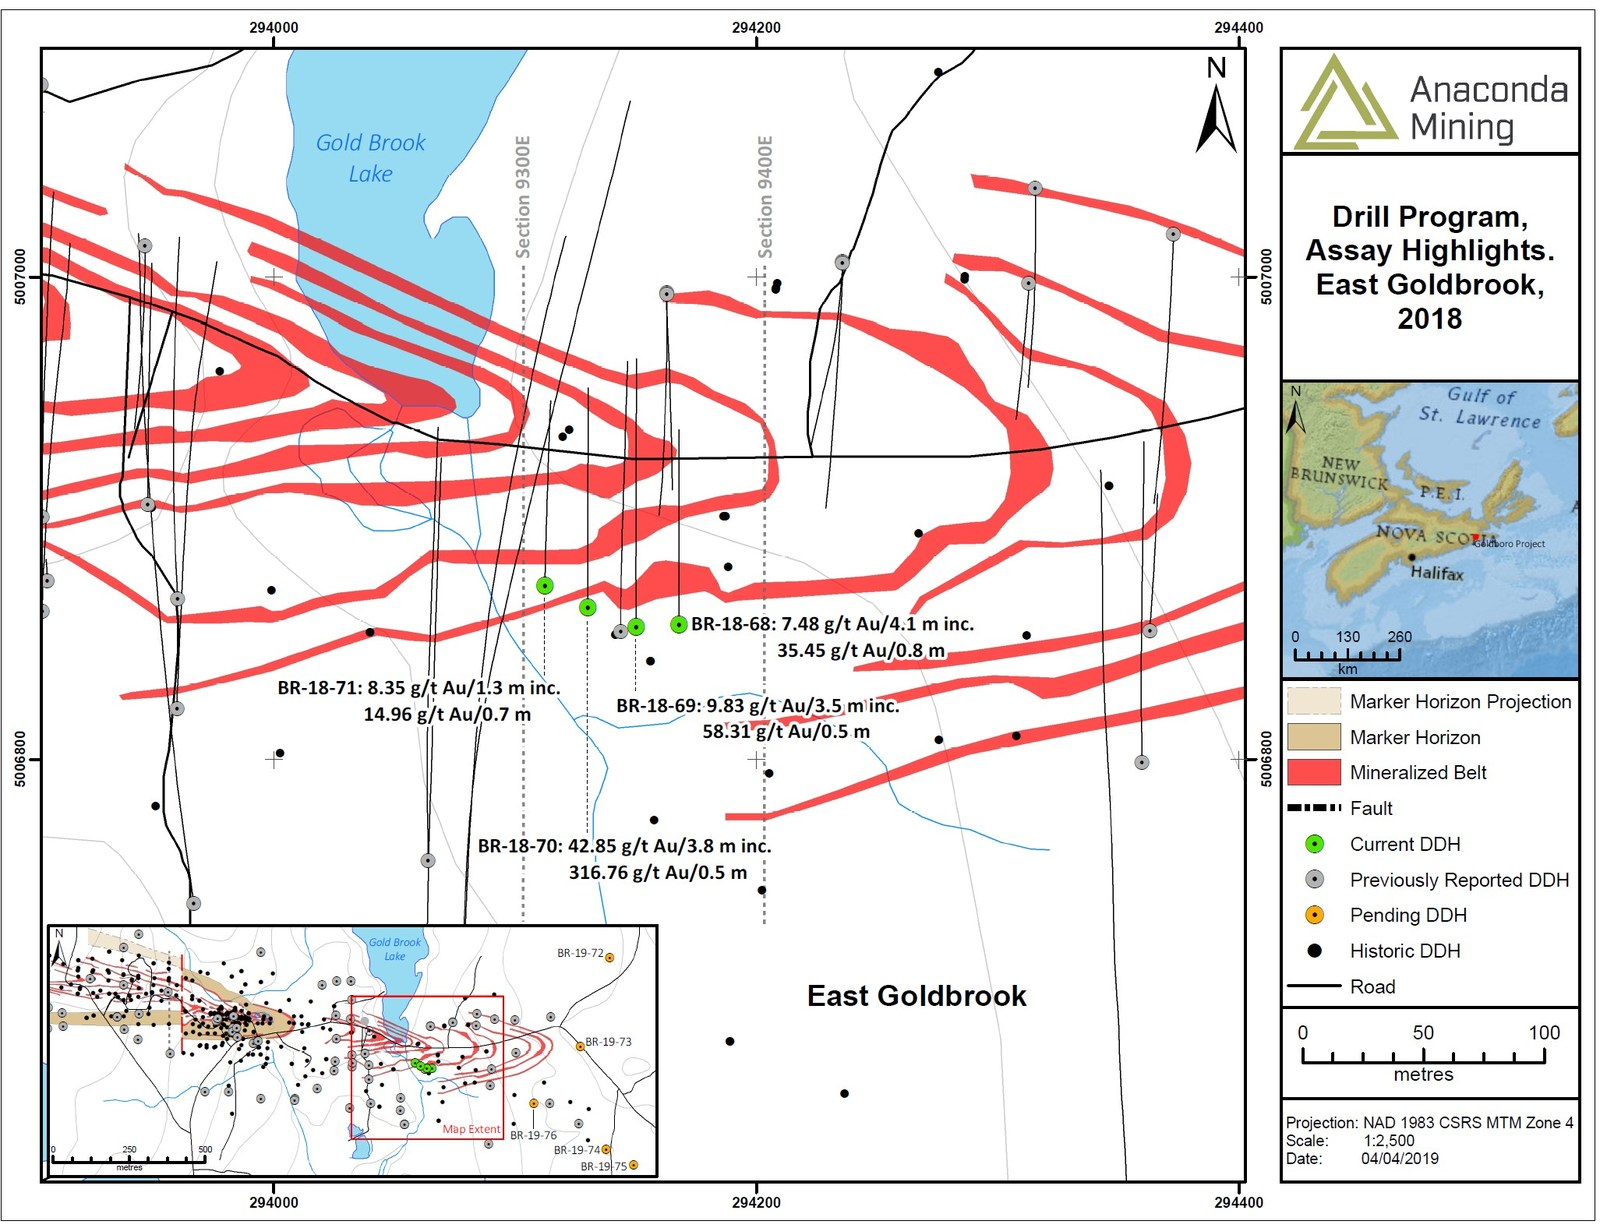 Exhibit A. A map showing the location of drill holes completed as part of the Metallurgical Drill Program and drilled along an 80-metre strike between cross sections 9300E and 9400E.